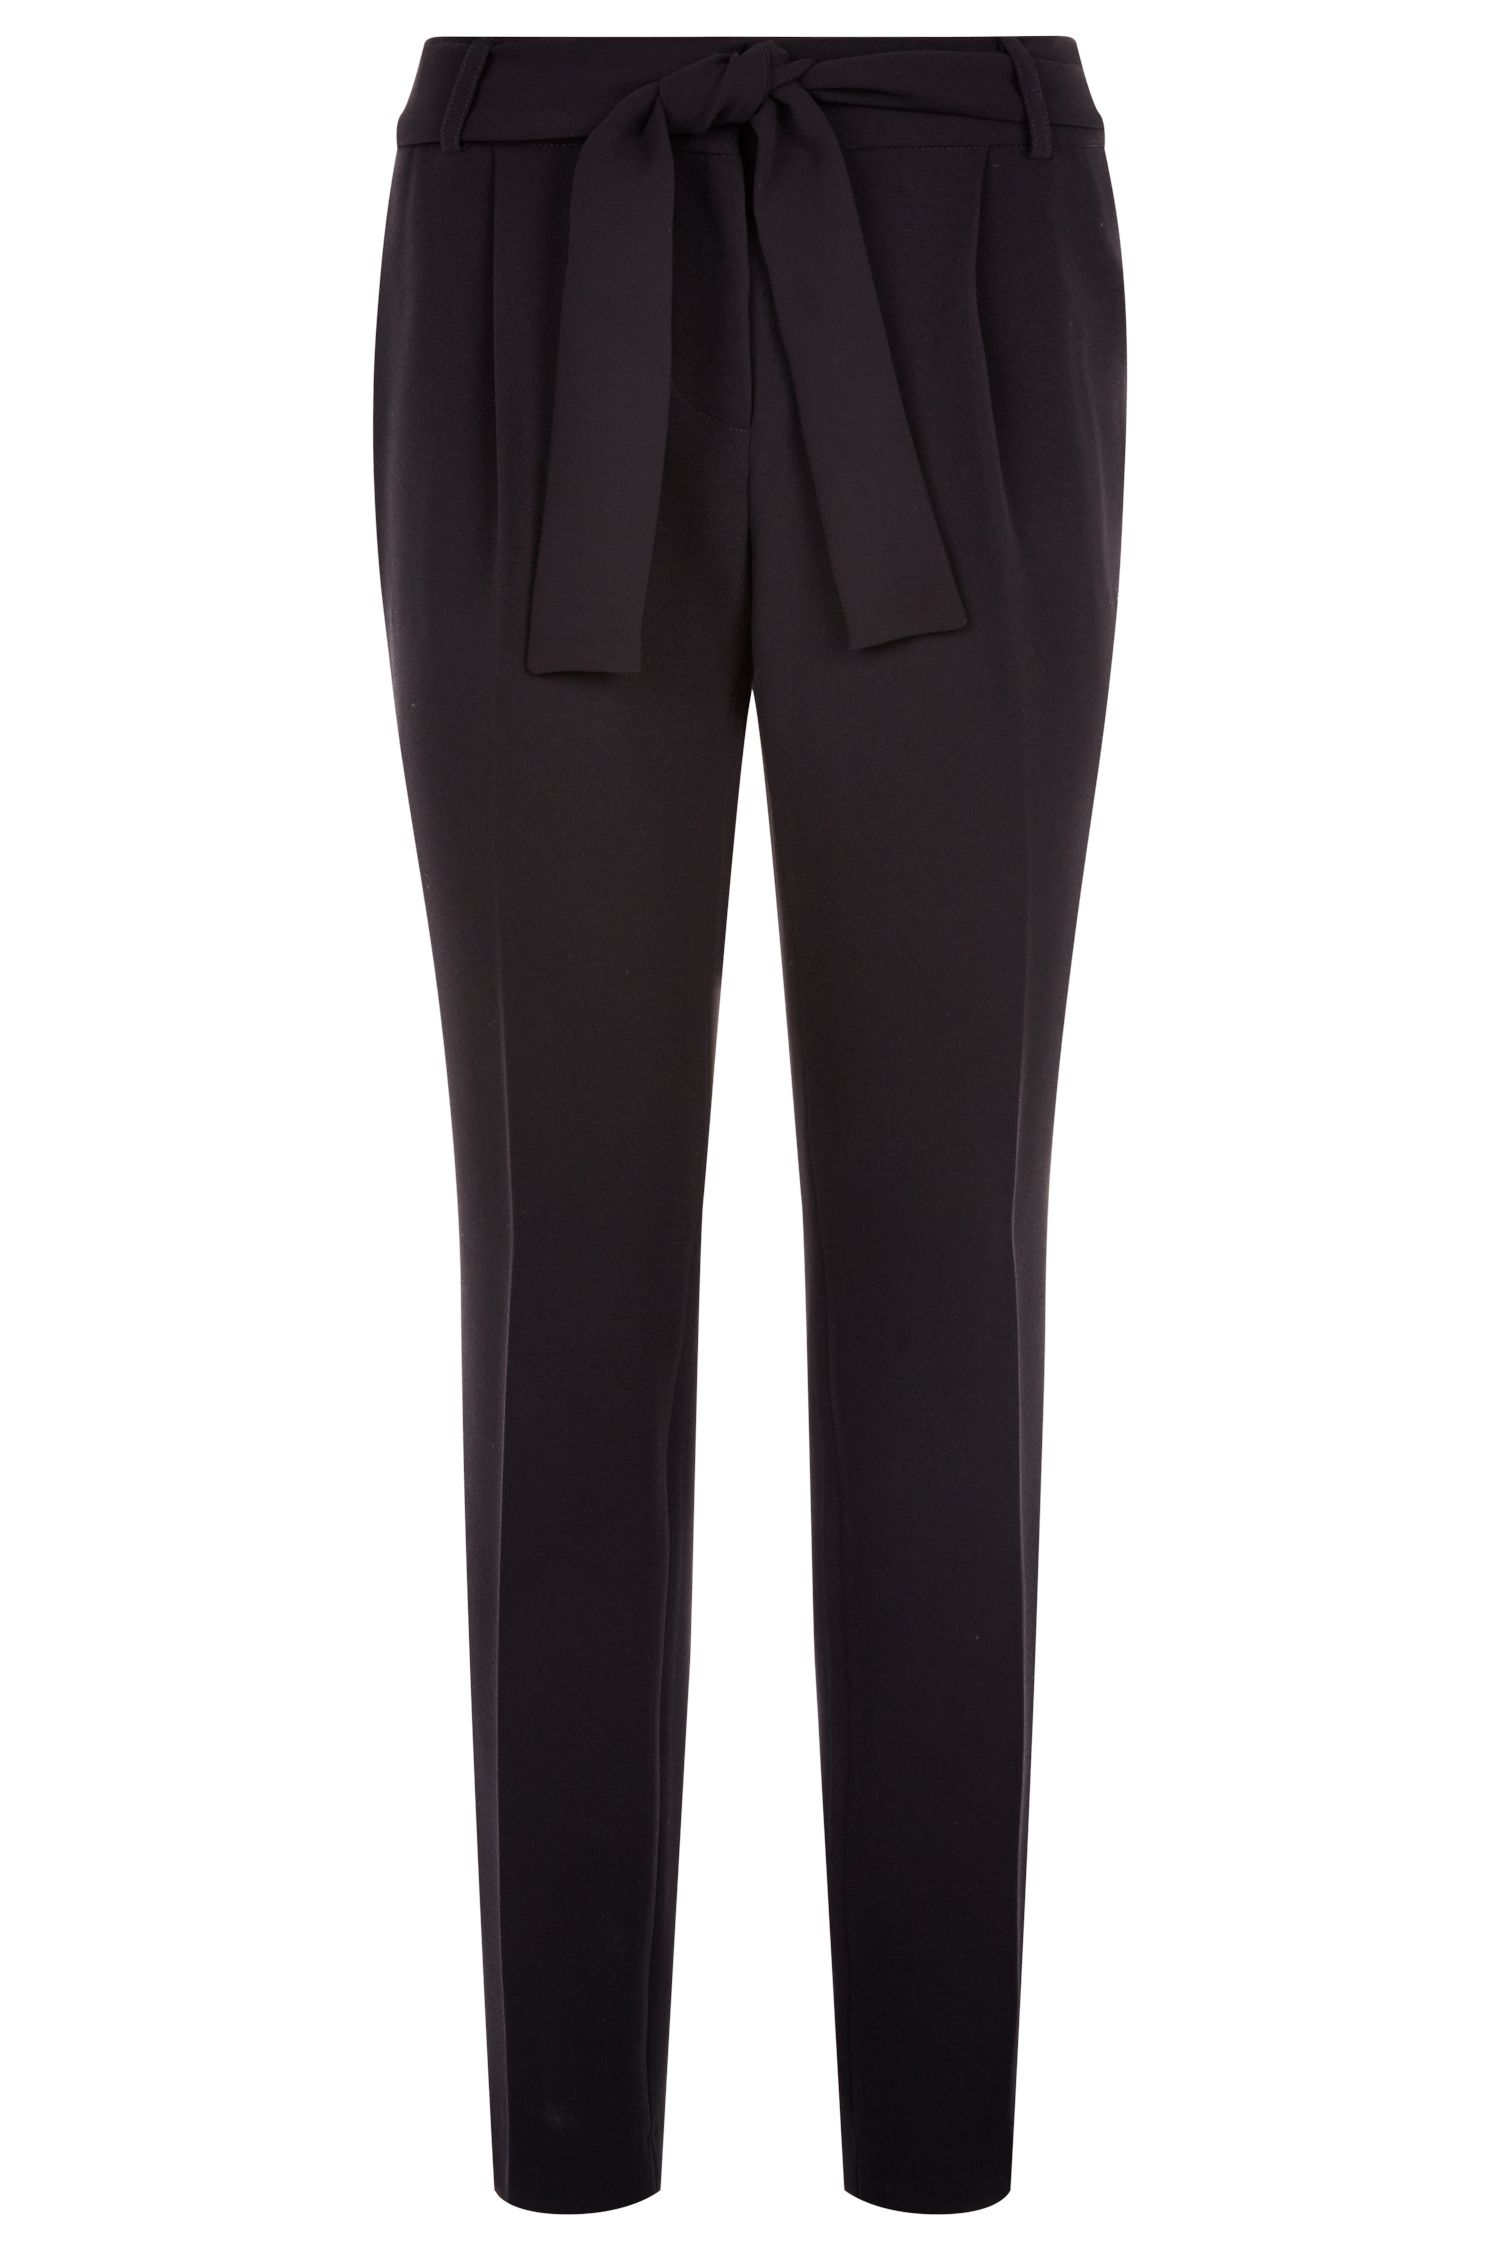 Fenn Wright Manson Gemini Trouser, Black